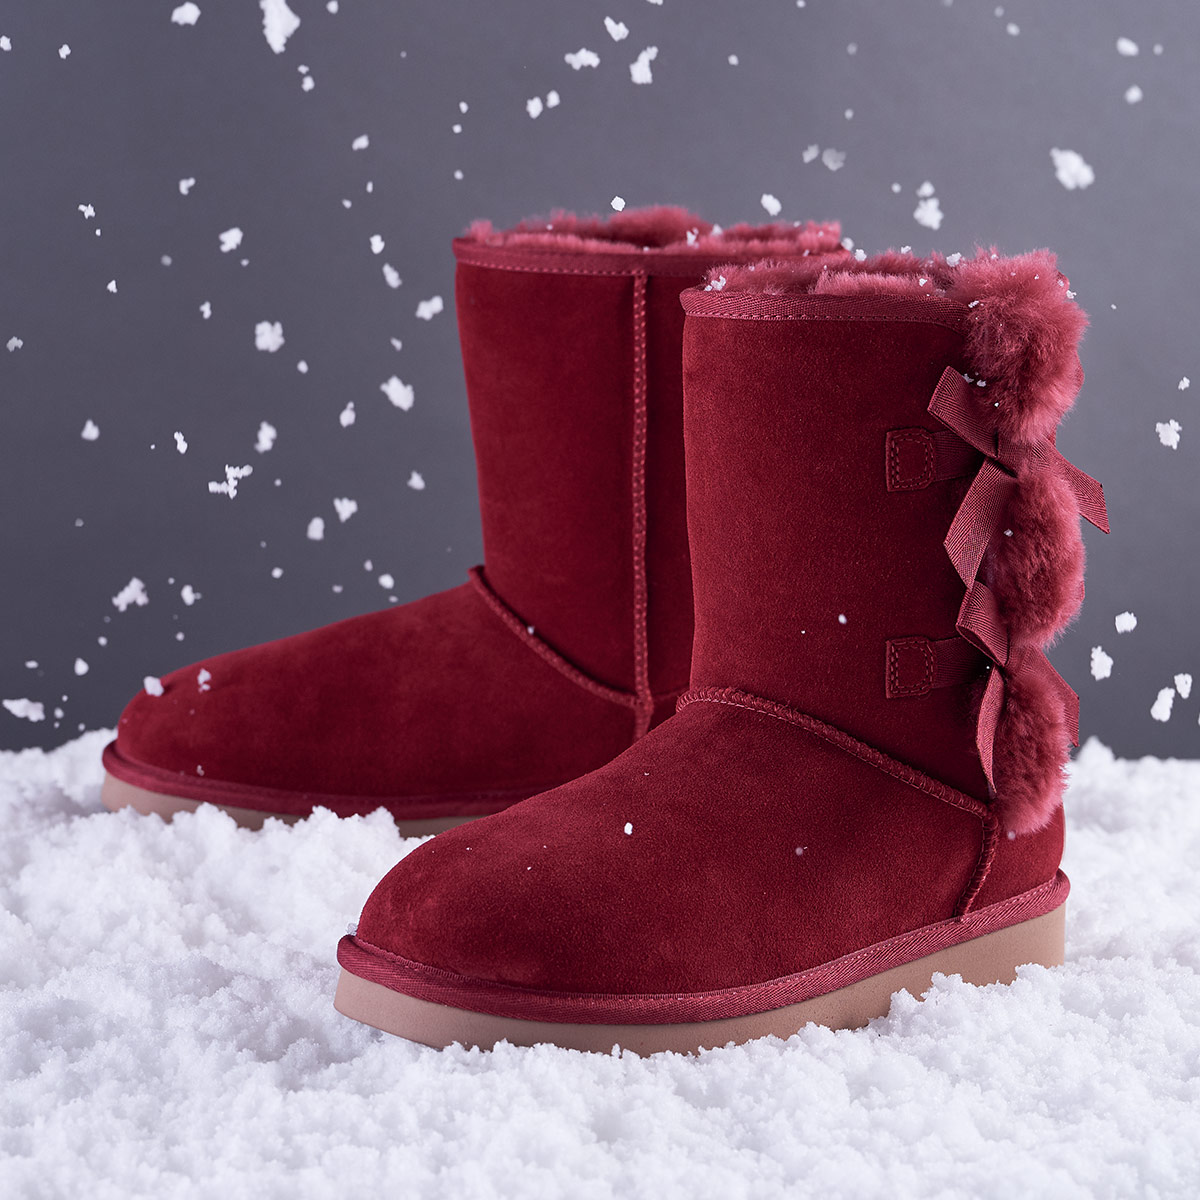 Pair of beautiful burgandy Koolaburra by Ugg boots